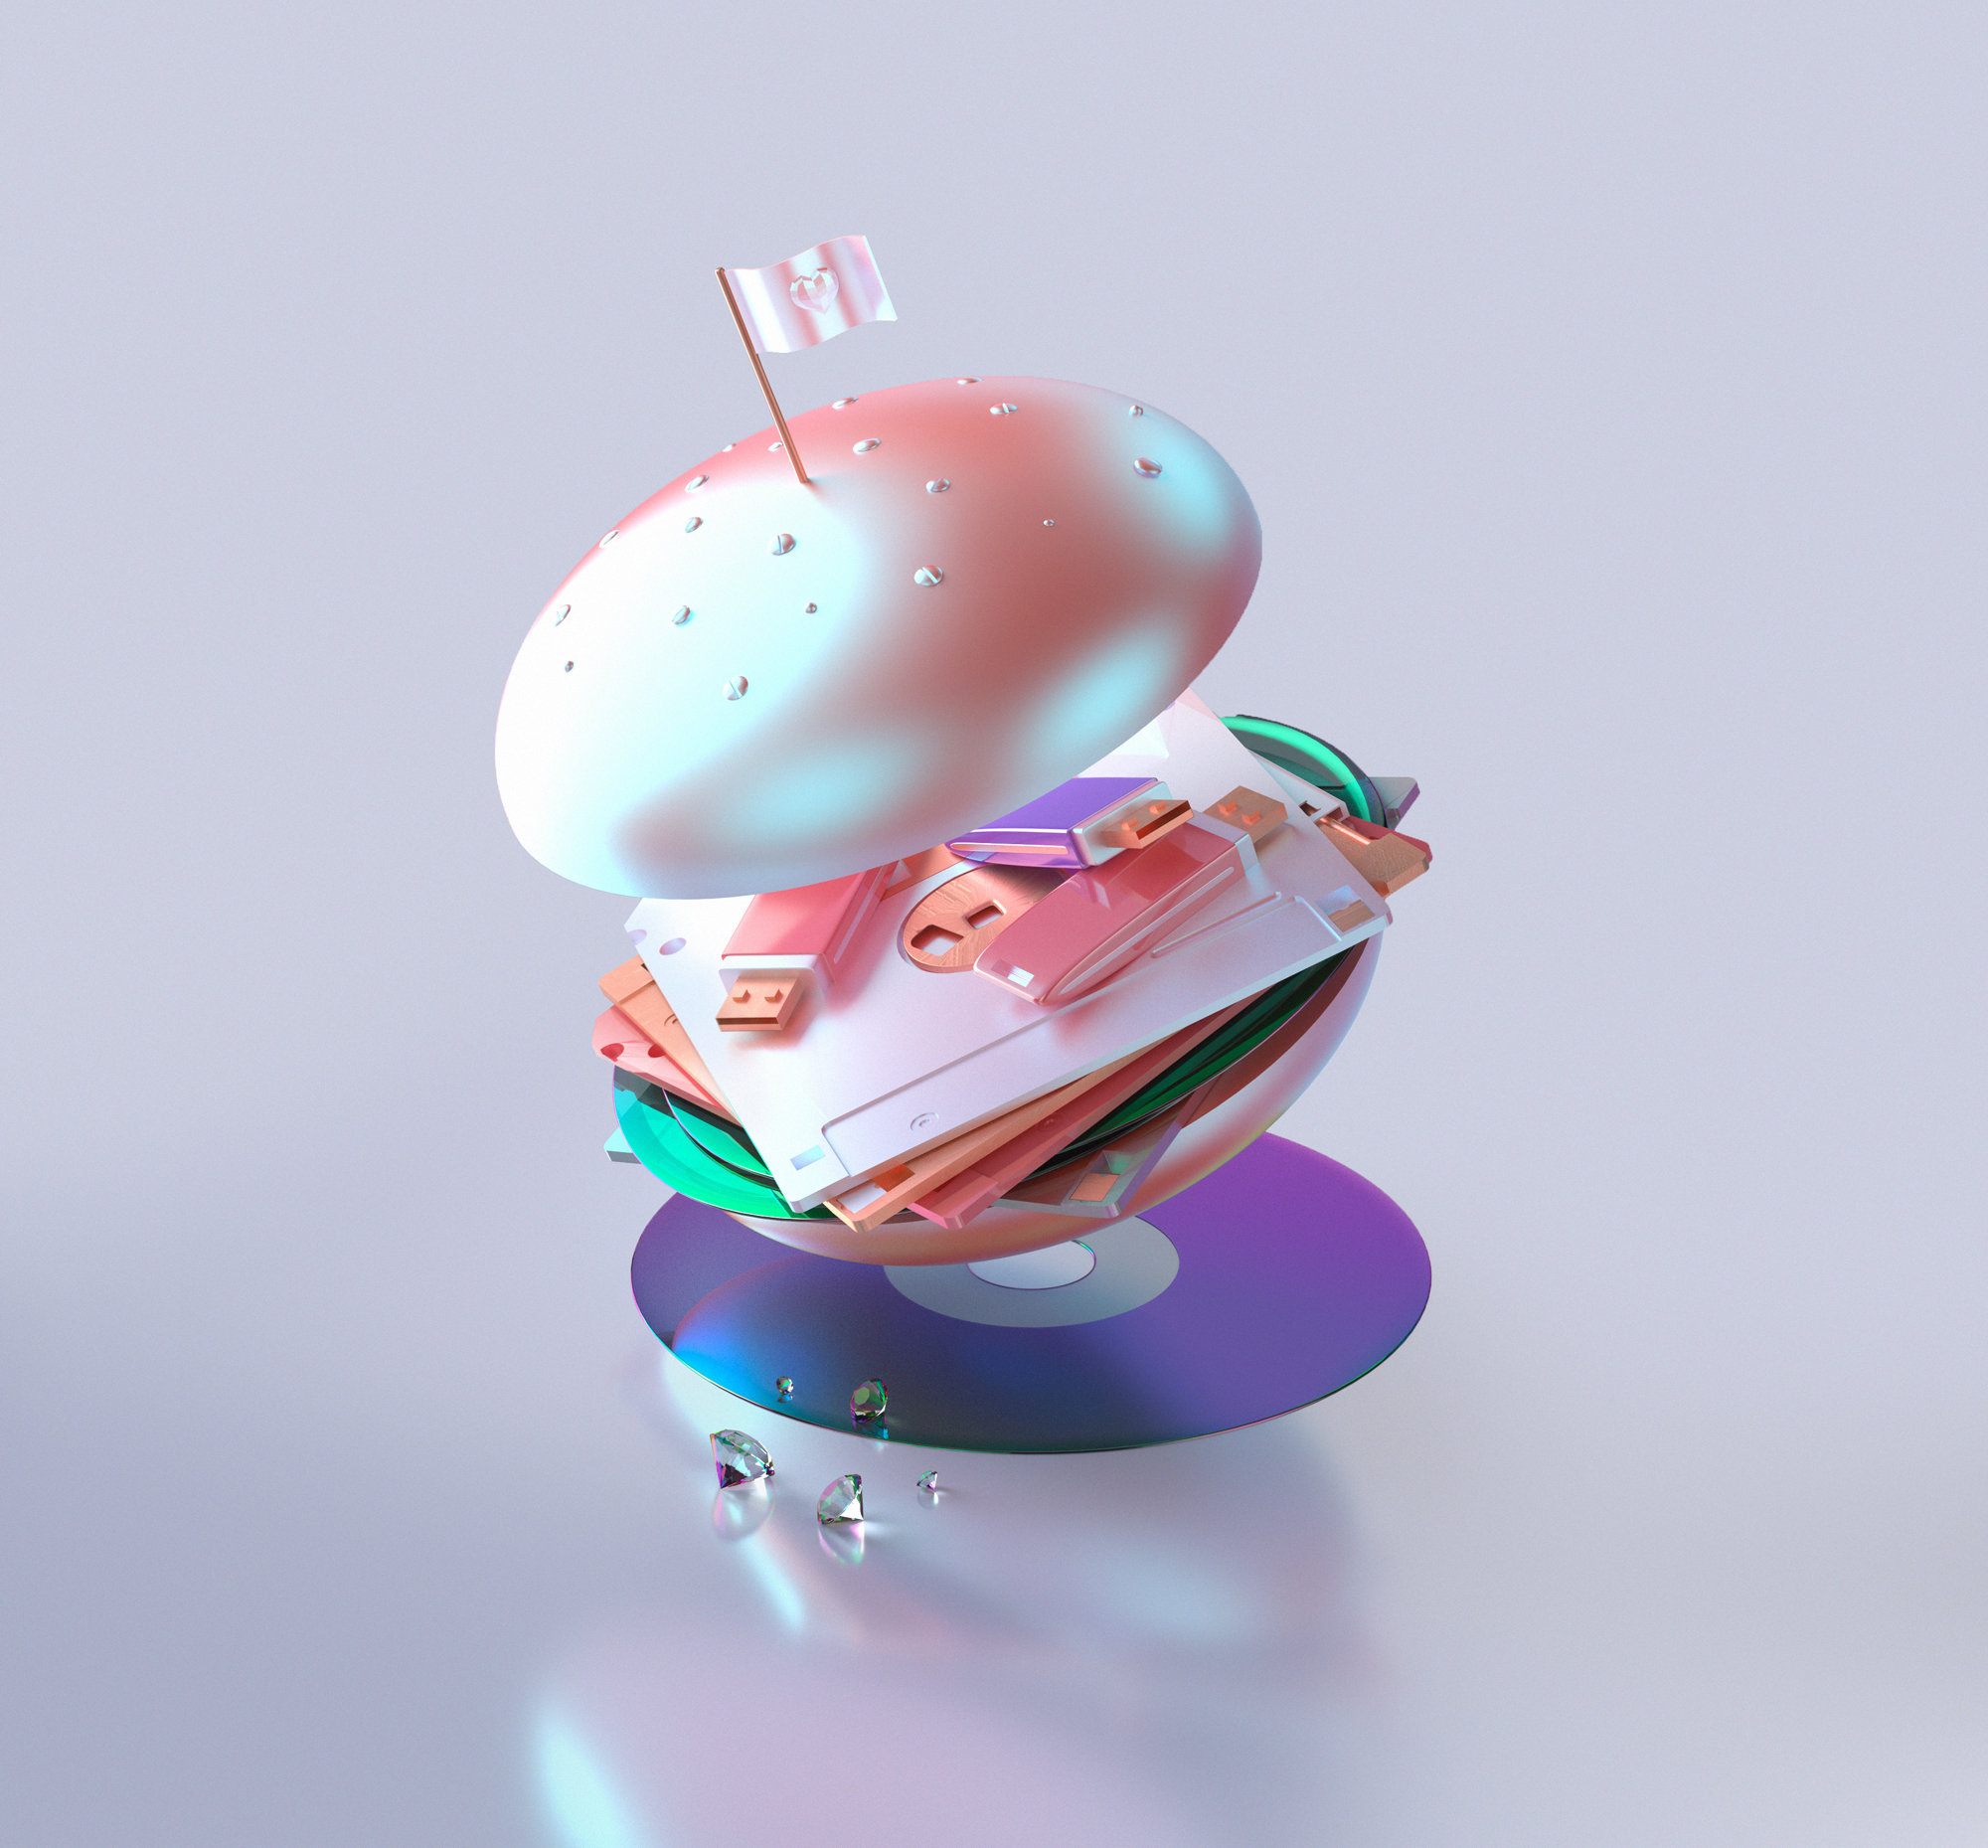 mcCyber hamburger, 3d art, technology